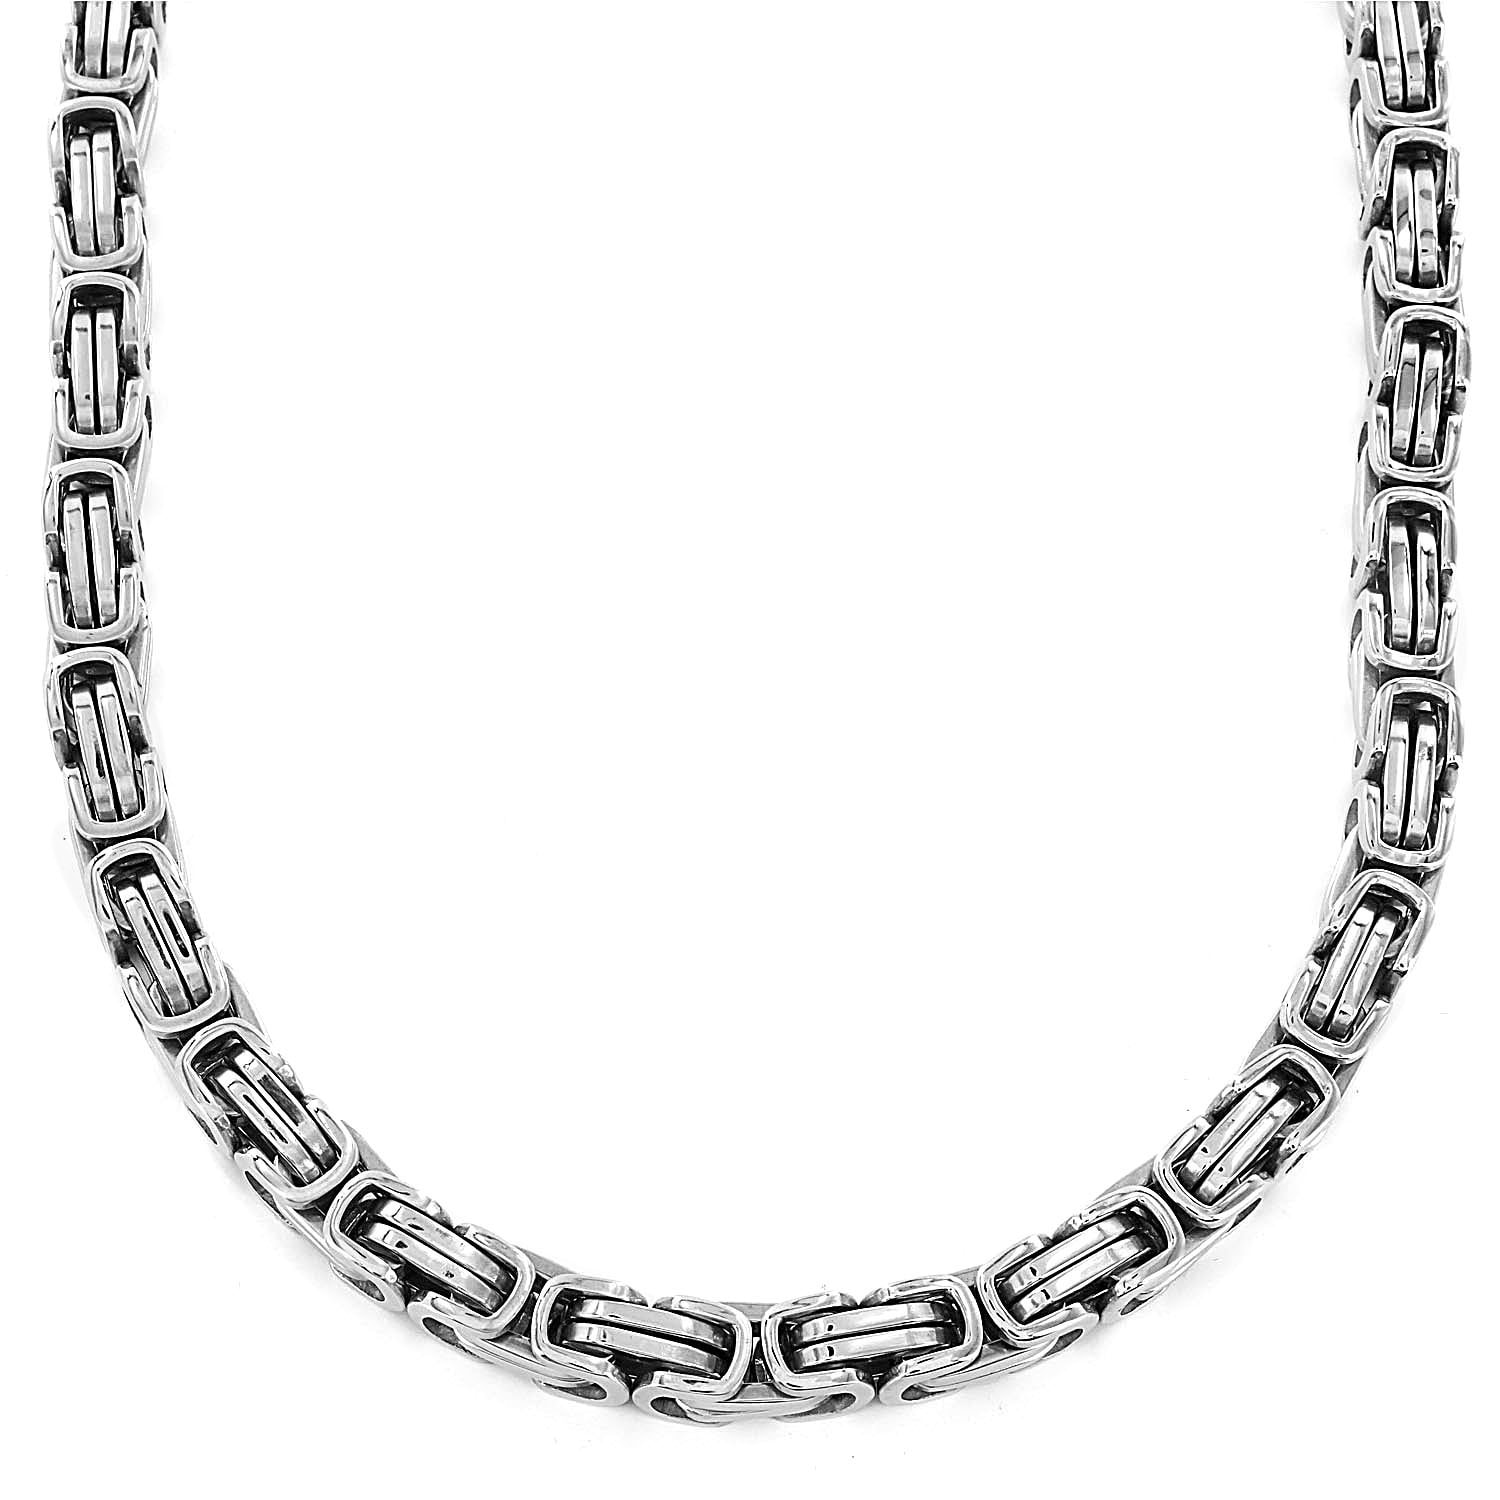 chain silver sterling products byzantine necklace jaebee